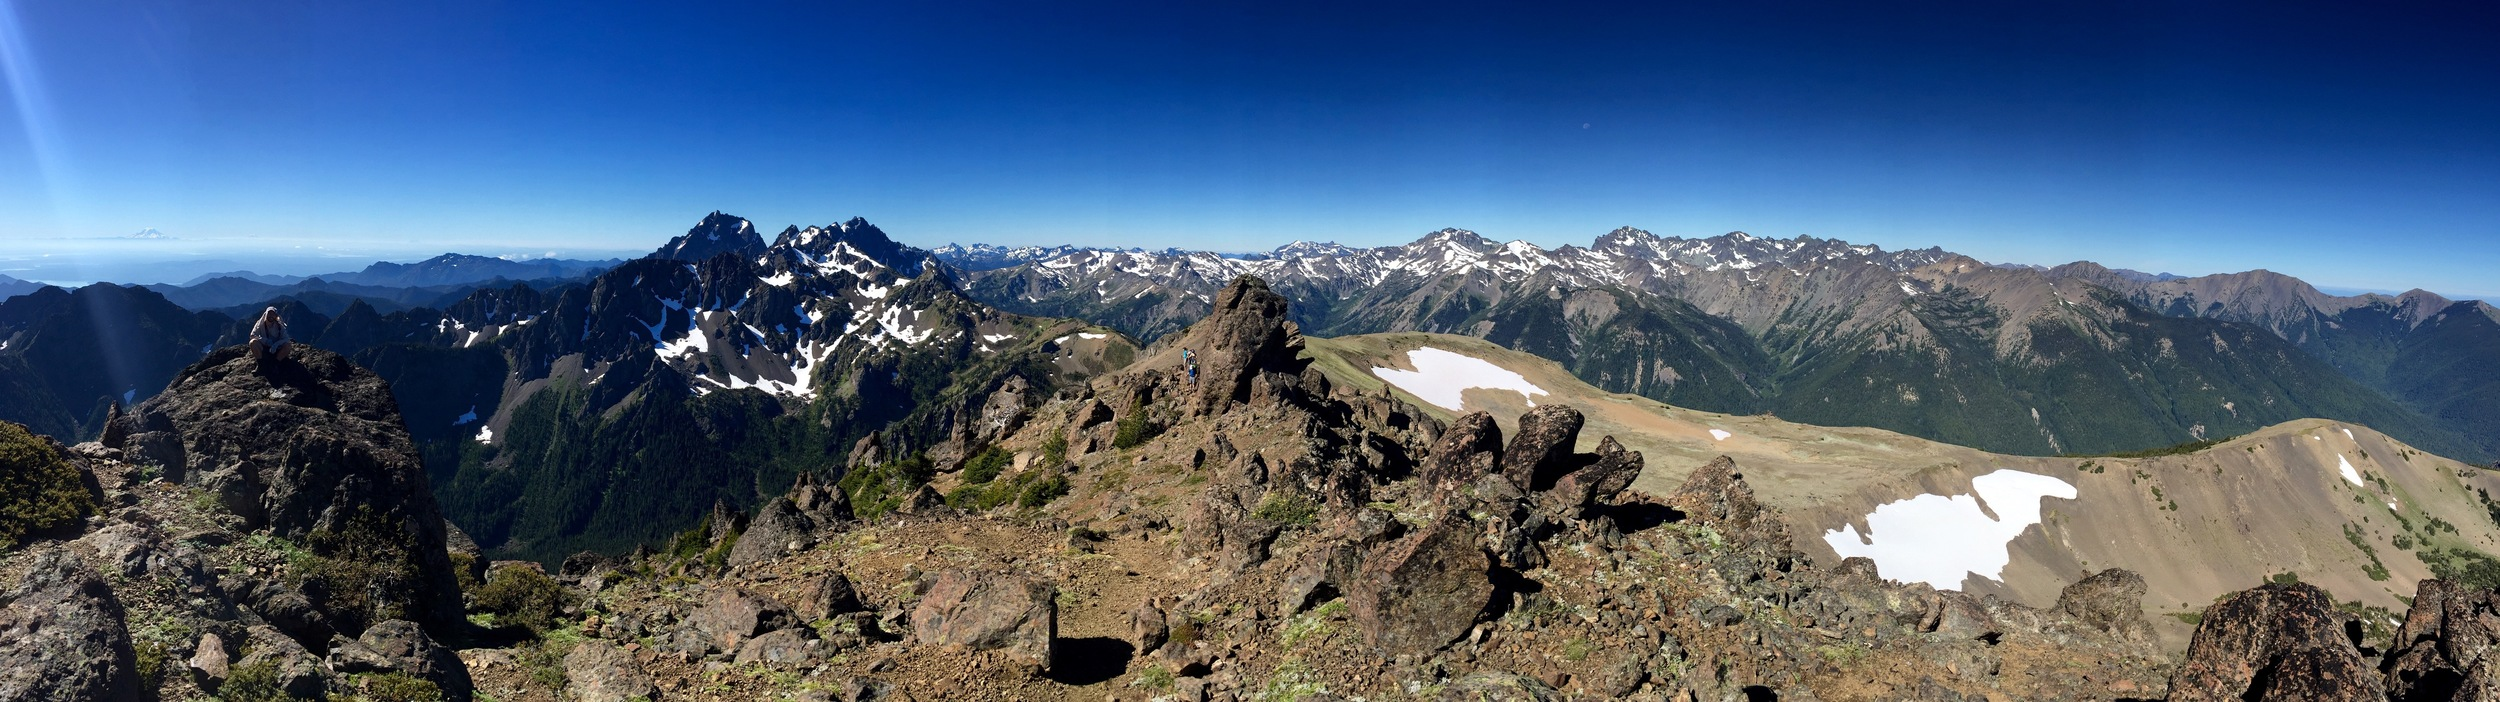 Panoramic view from southeast to southwest from Buckhorn Mountain